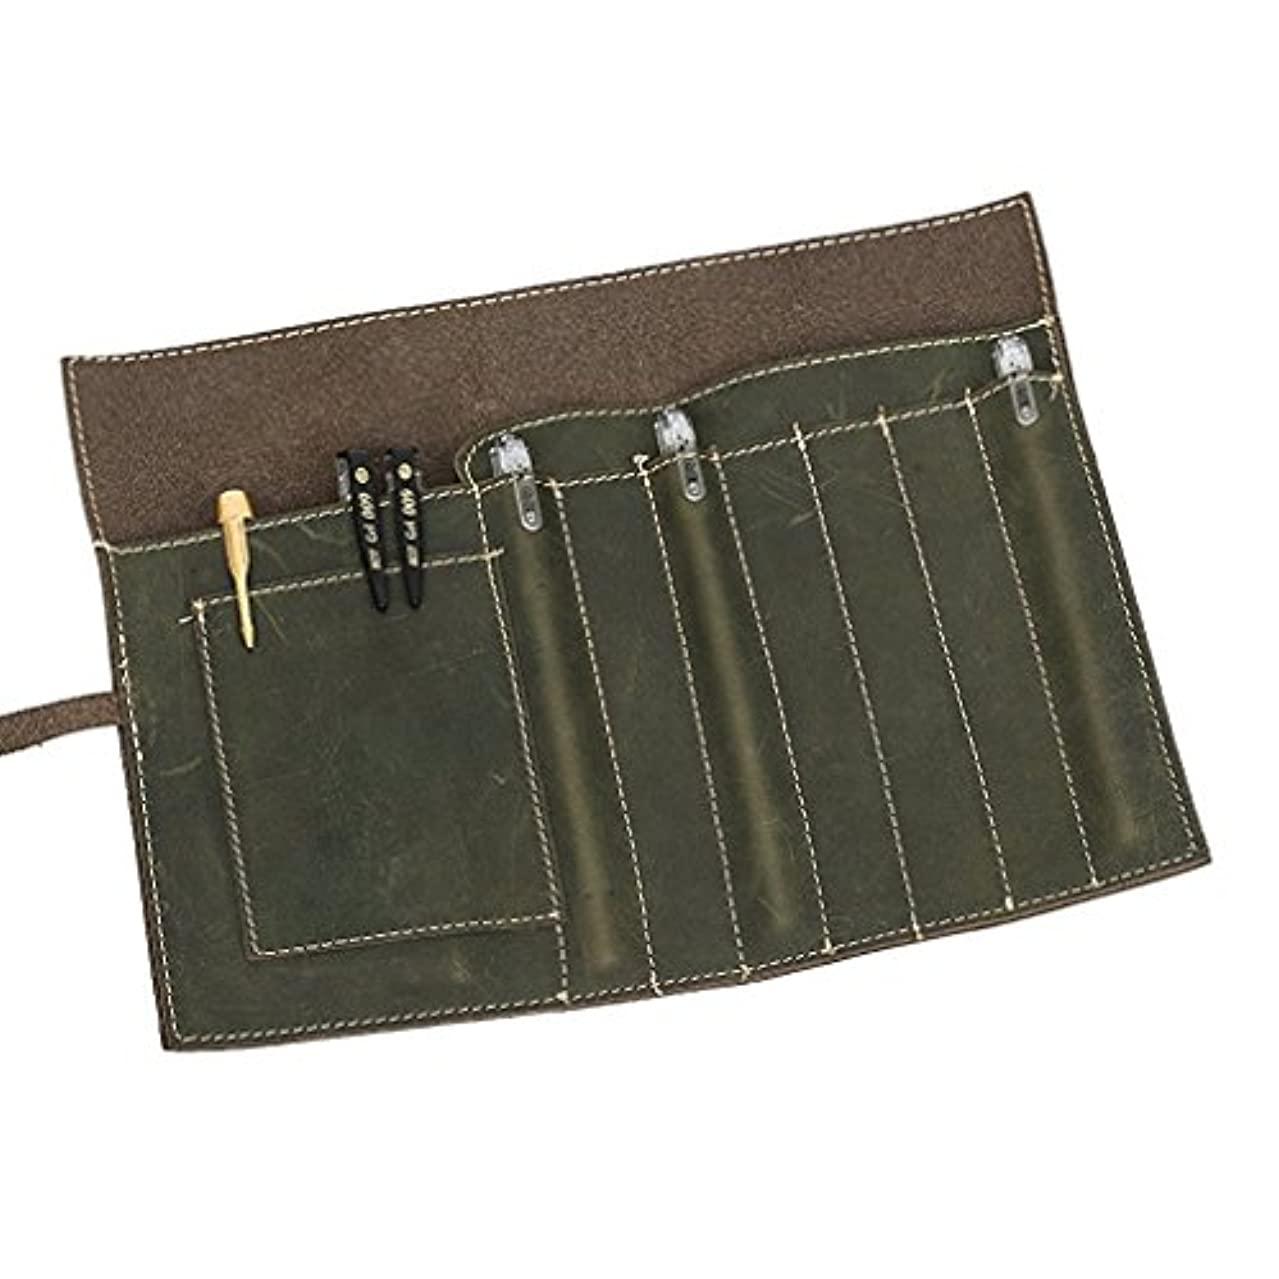 Leather Pencil Case, Art Pencil Pouch for Men, Leather Art Brushes Tool Roll, Pen Roll, Pen Holder Organizer for Art Pencils, Pens, Brushes, Soft Wrap Bag Stationery Gift for Students